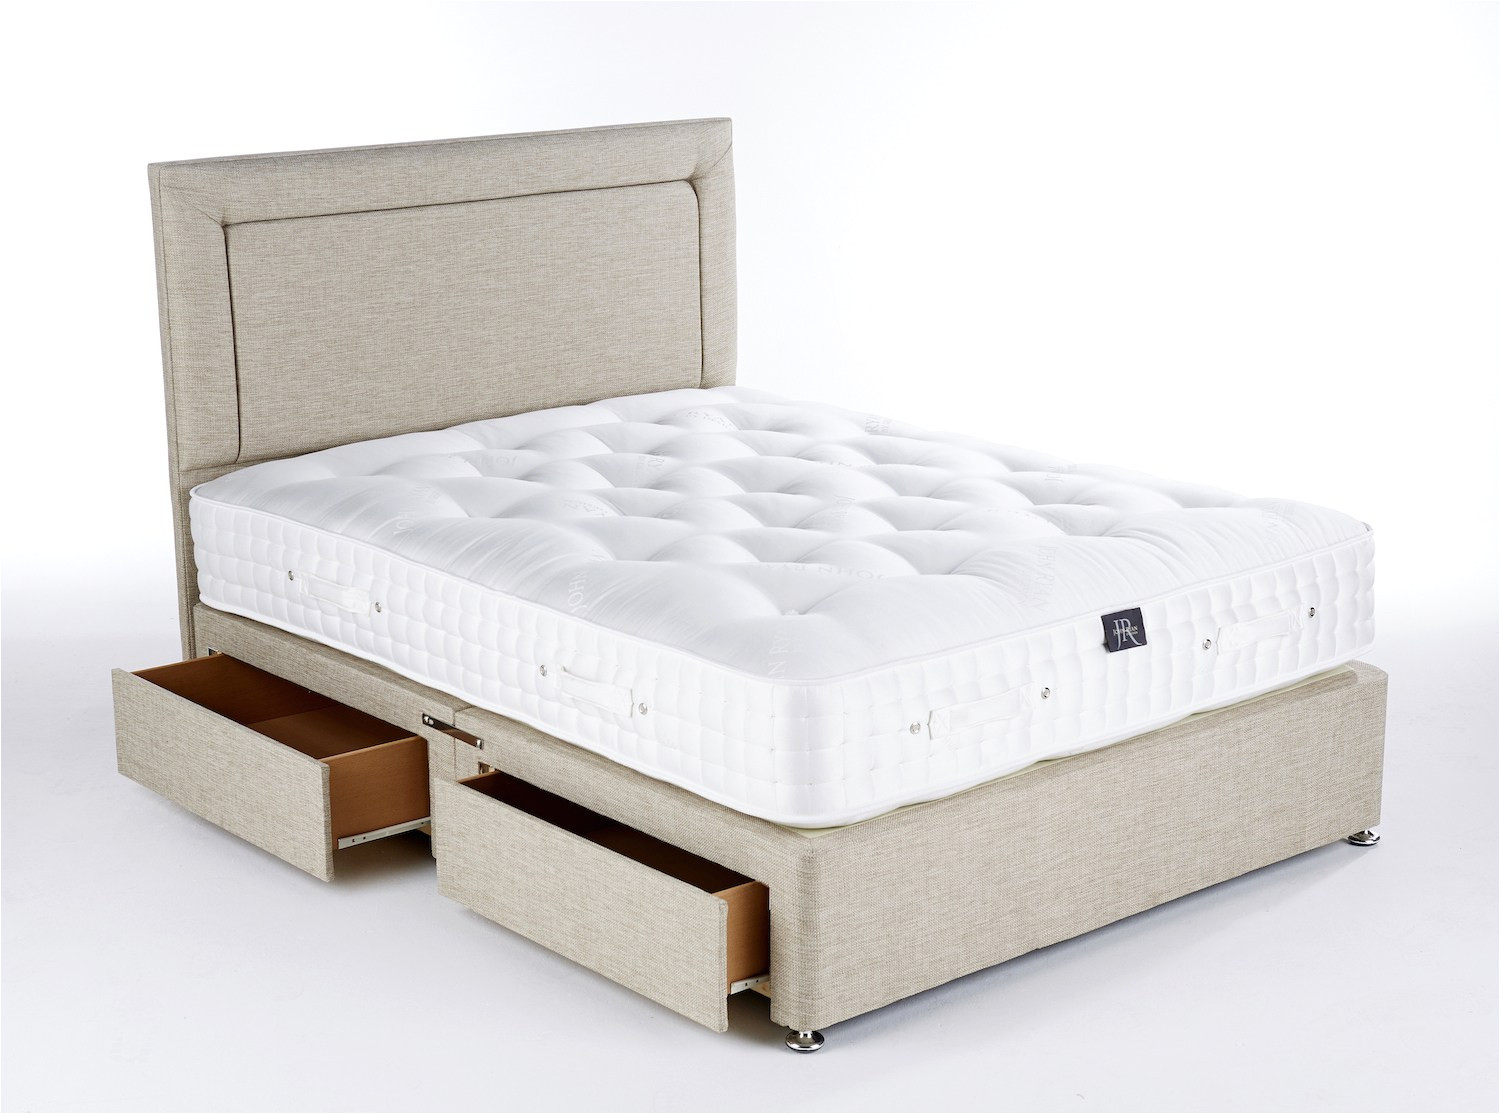 ikea myrbacka memory foam mattress reviews adinaporter. Black Bedroom Furniture Sets. Home Design Ideas